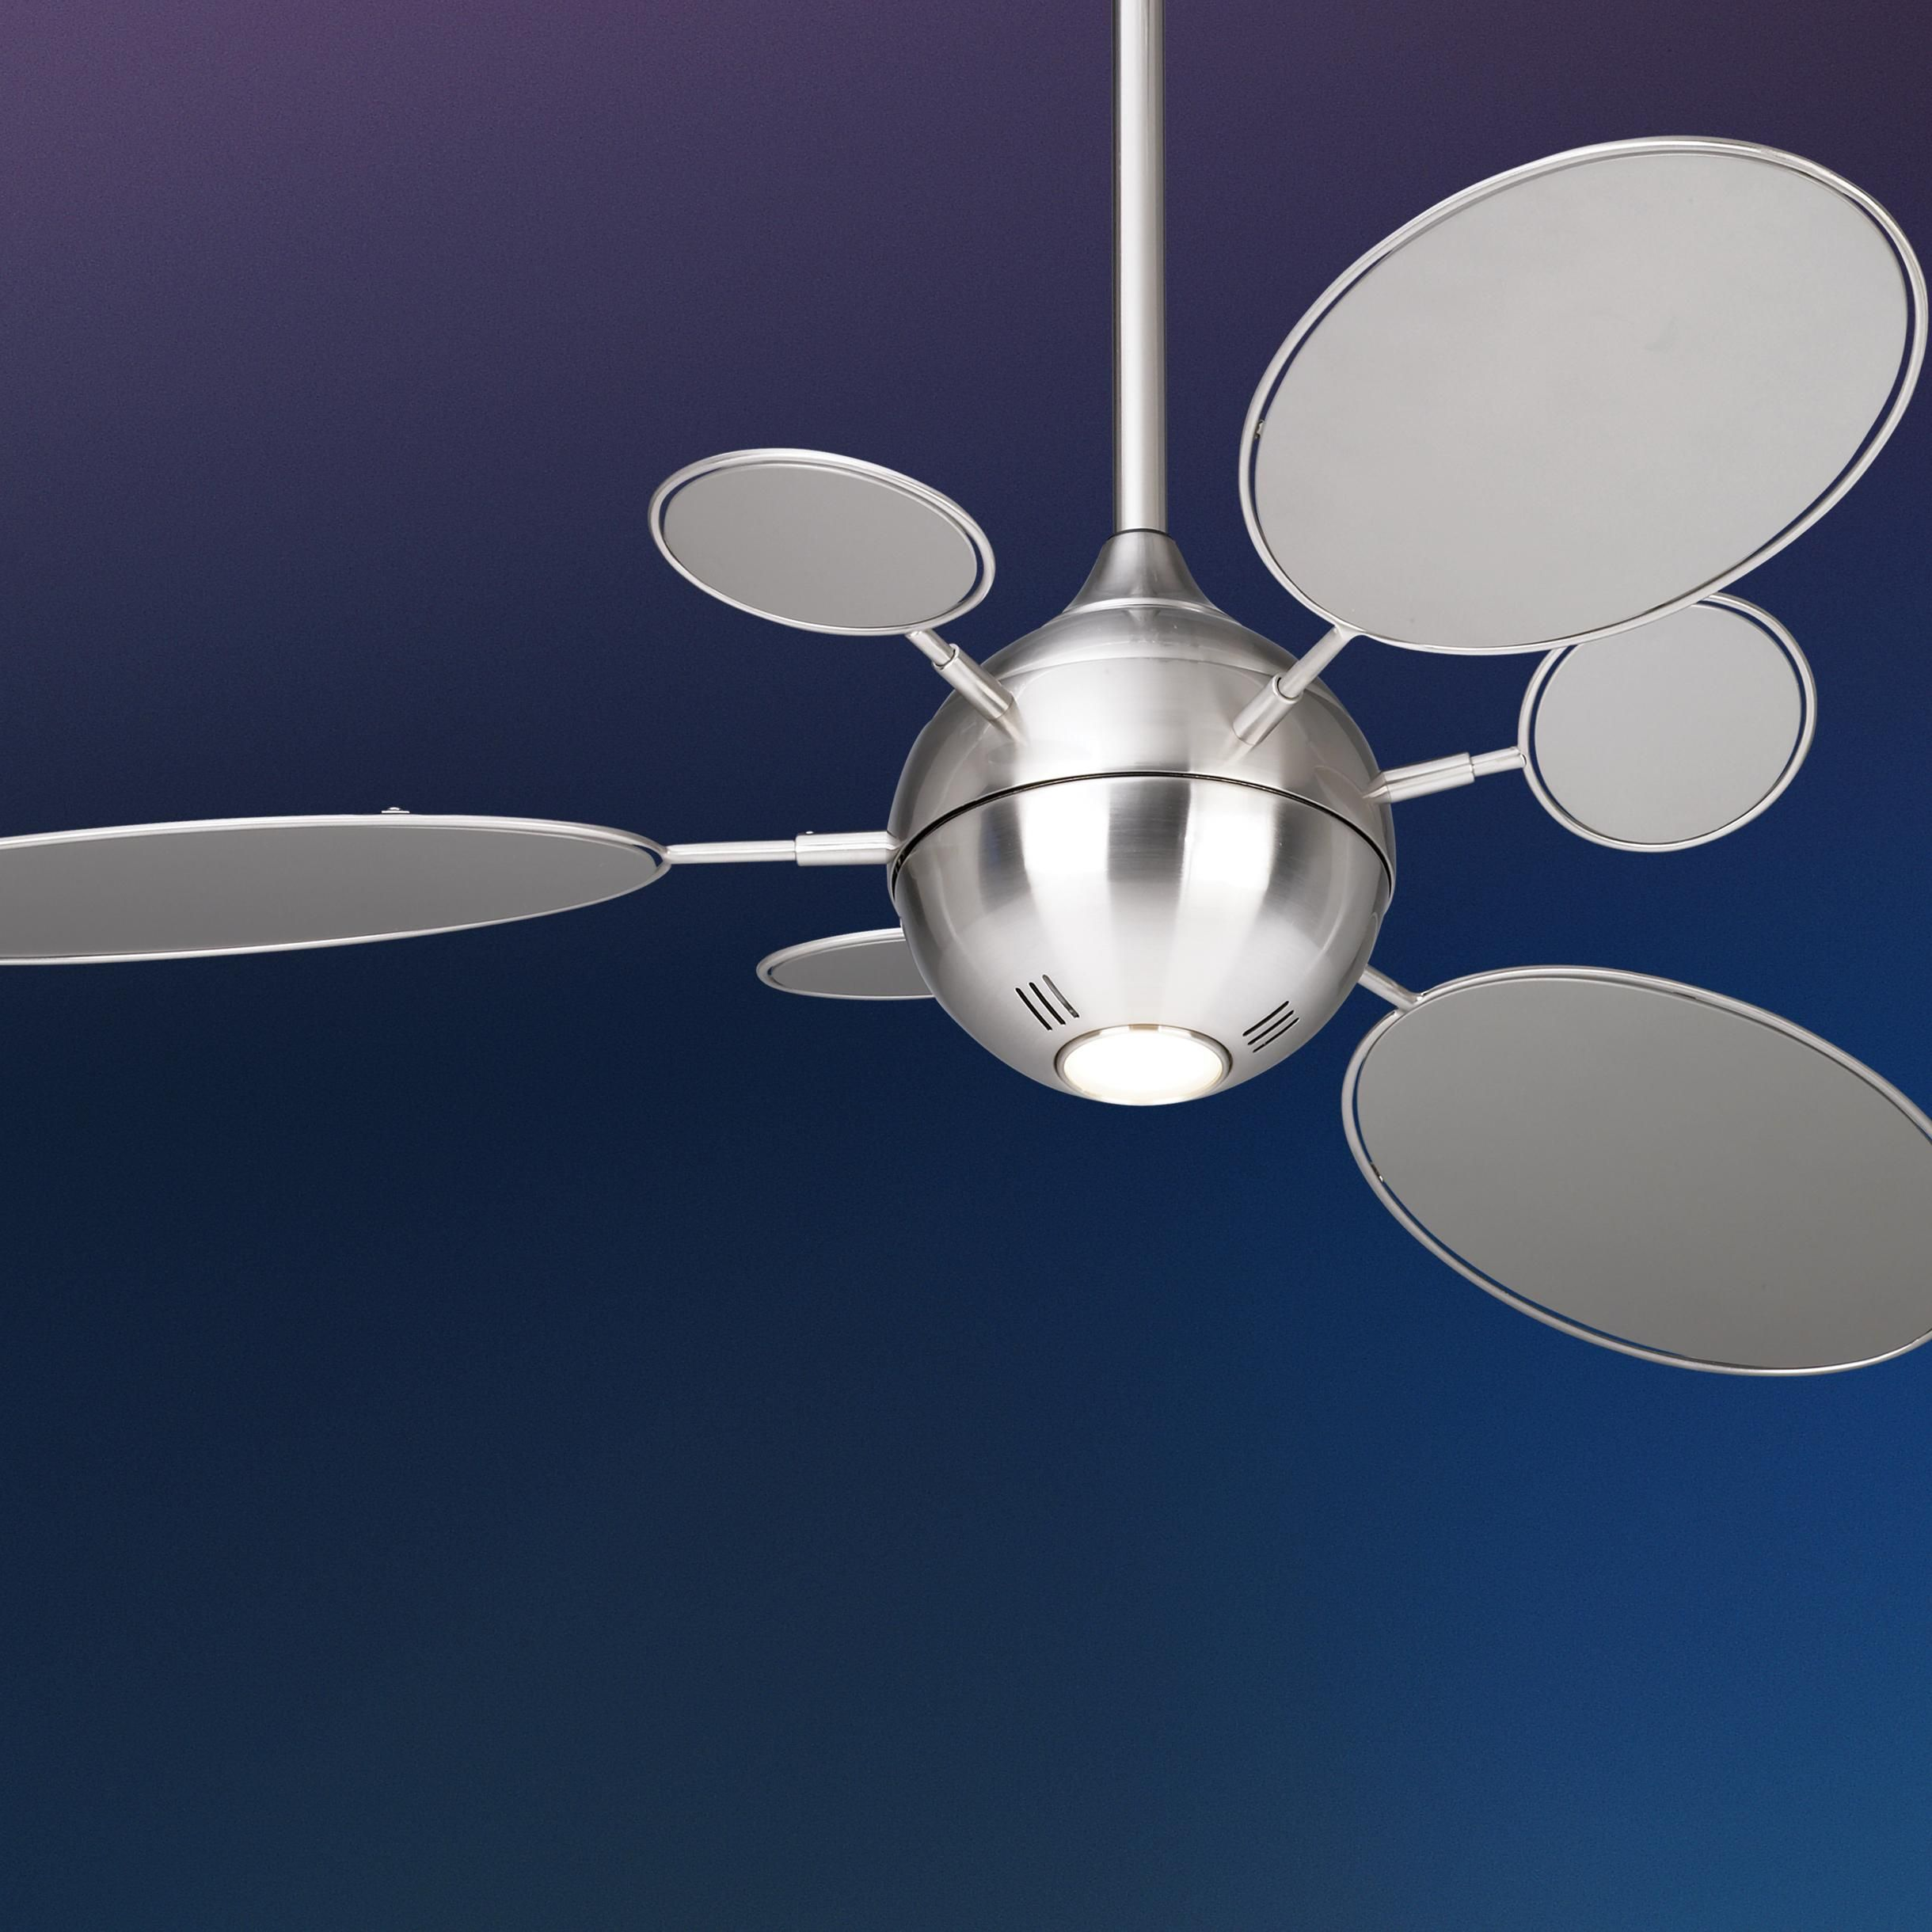 54 Minka Aire Cirque Brushed Nickel Ceiling Fan Lampsplus Com